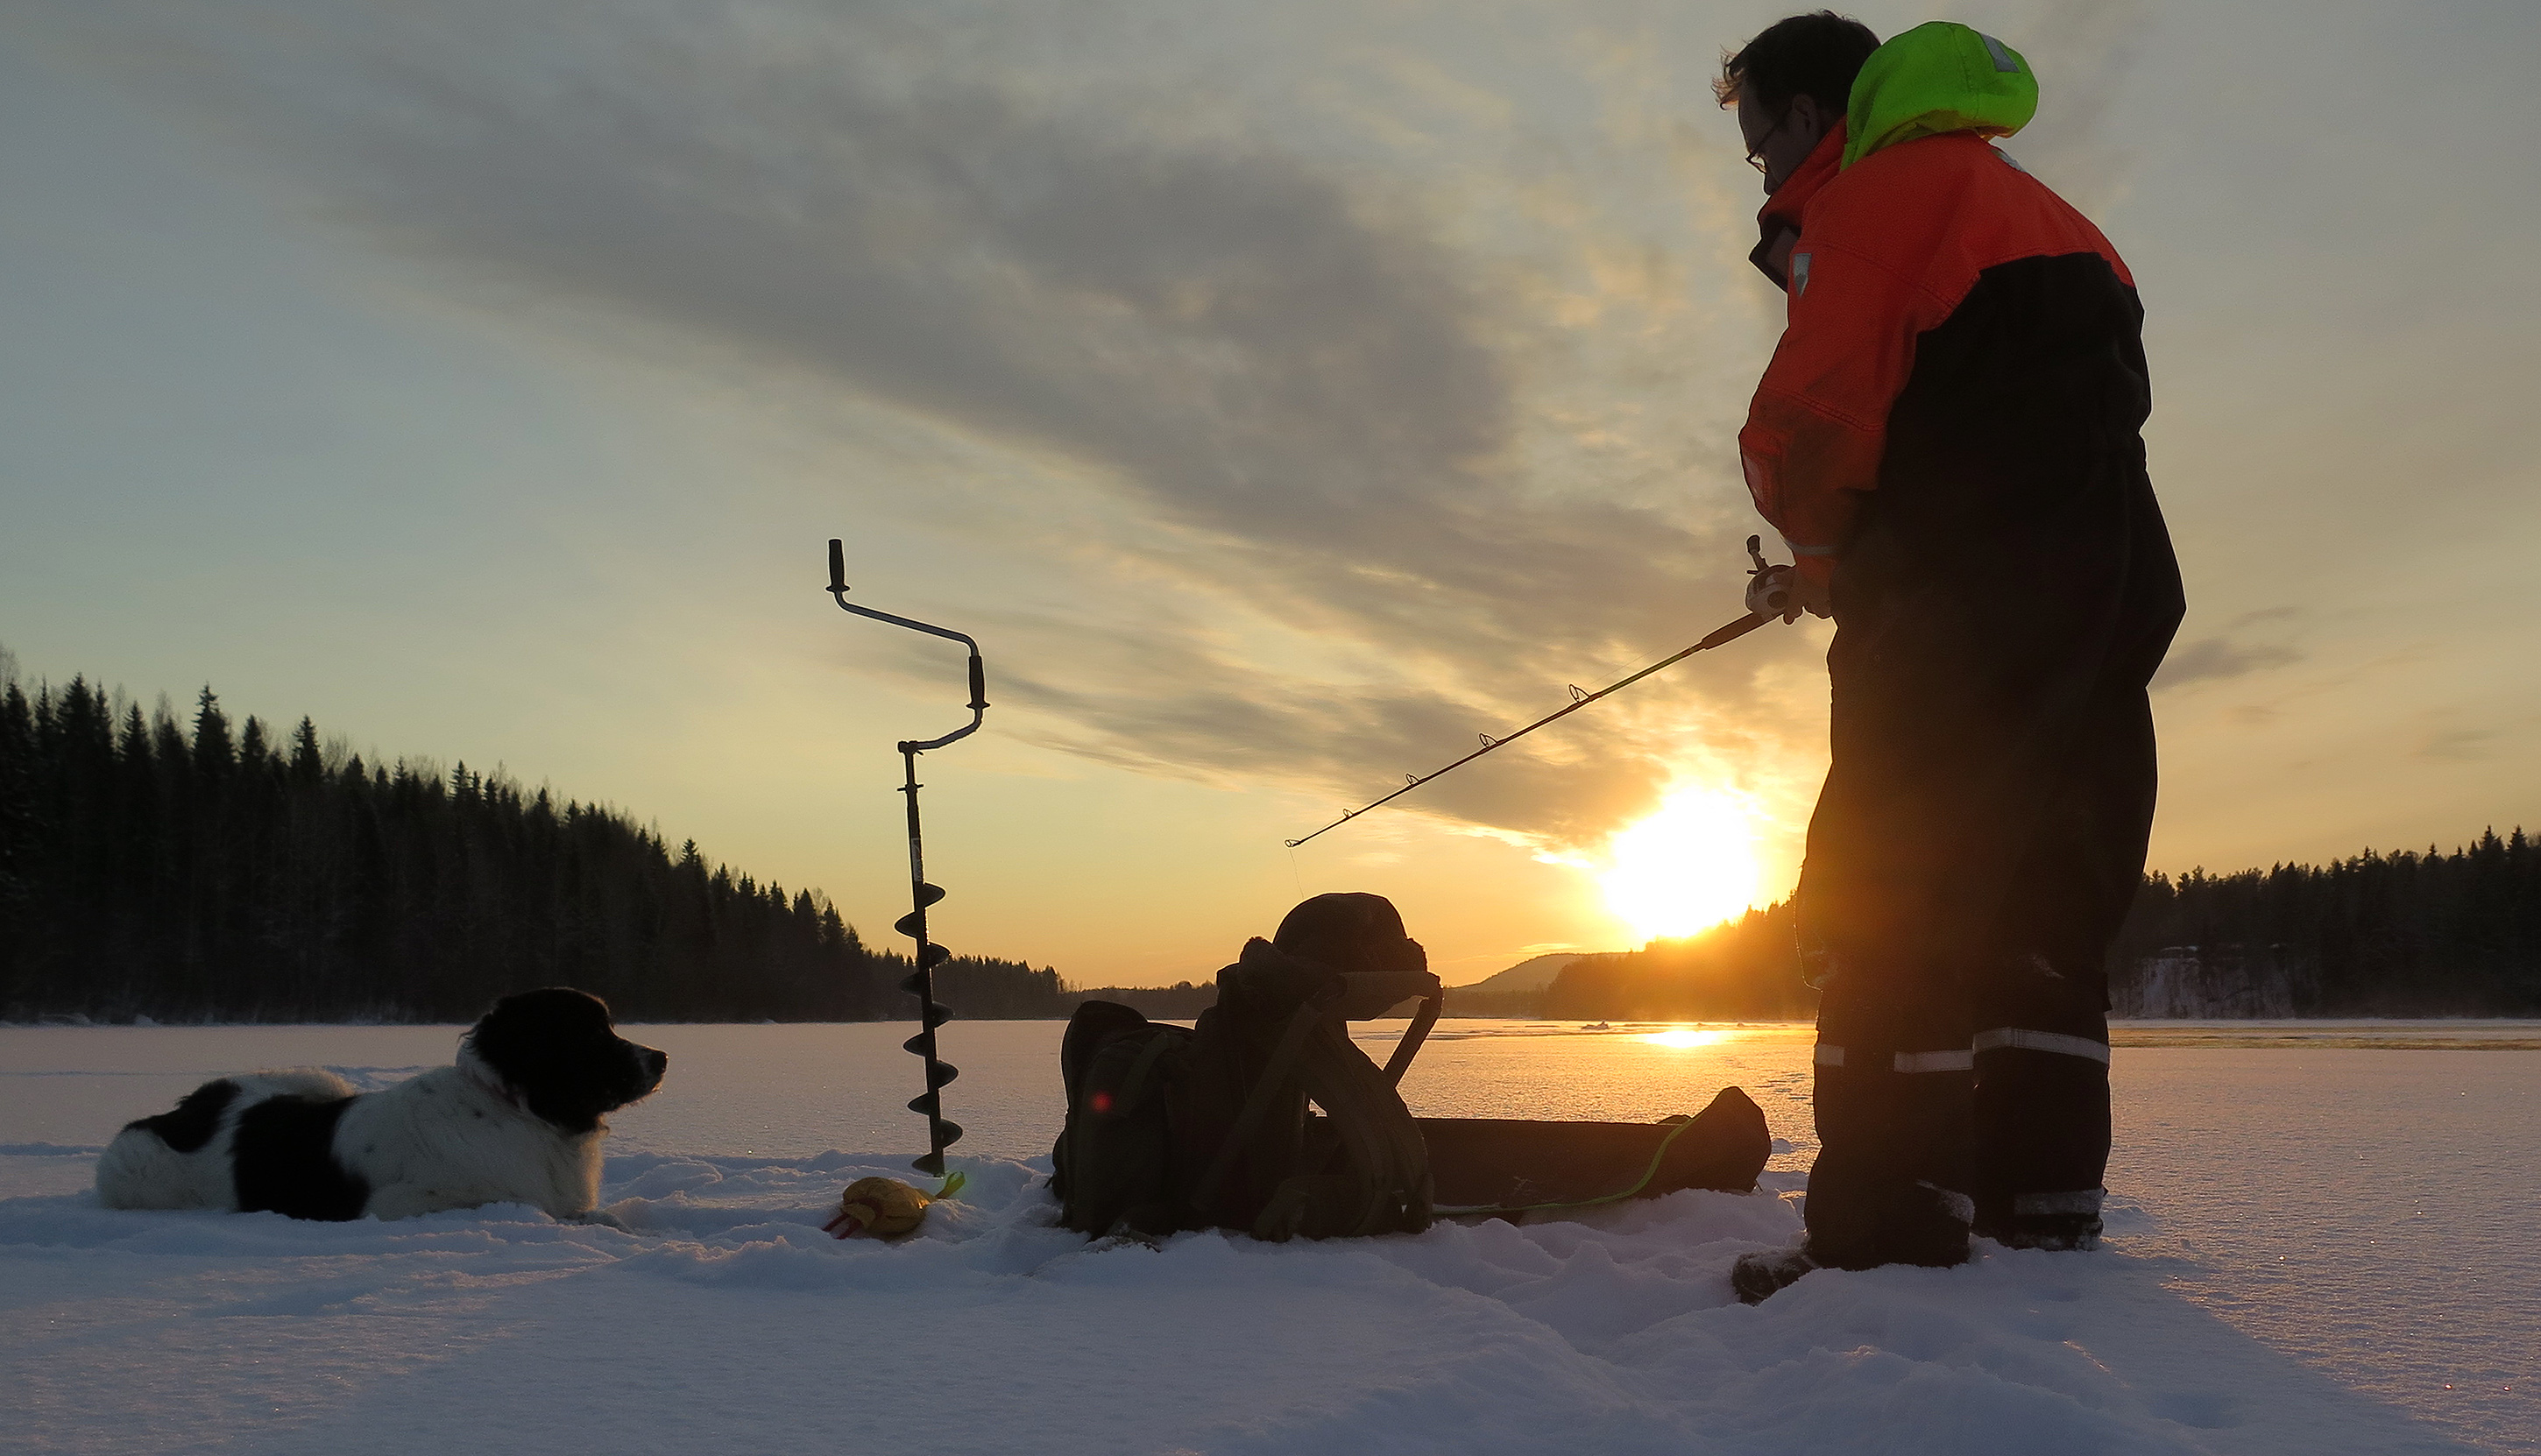 Ice fishing salmon and trout on River Luleå, Swedish Lapland.